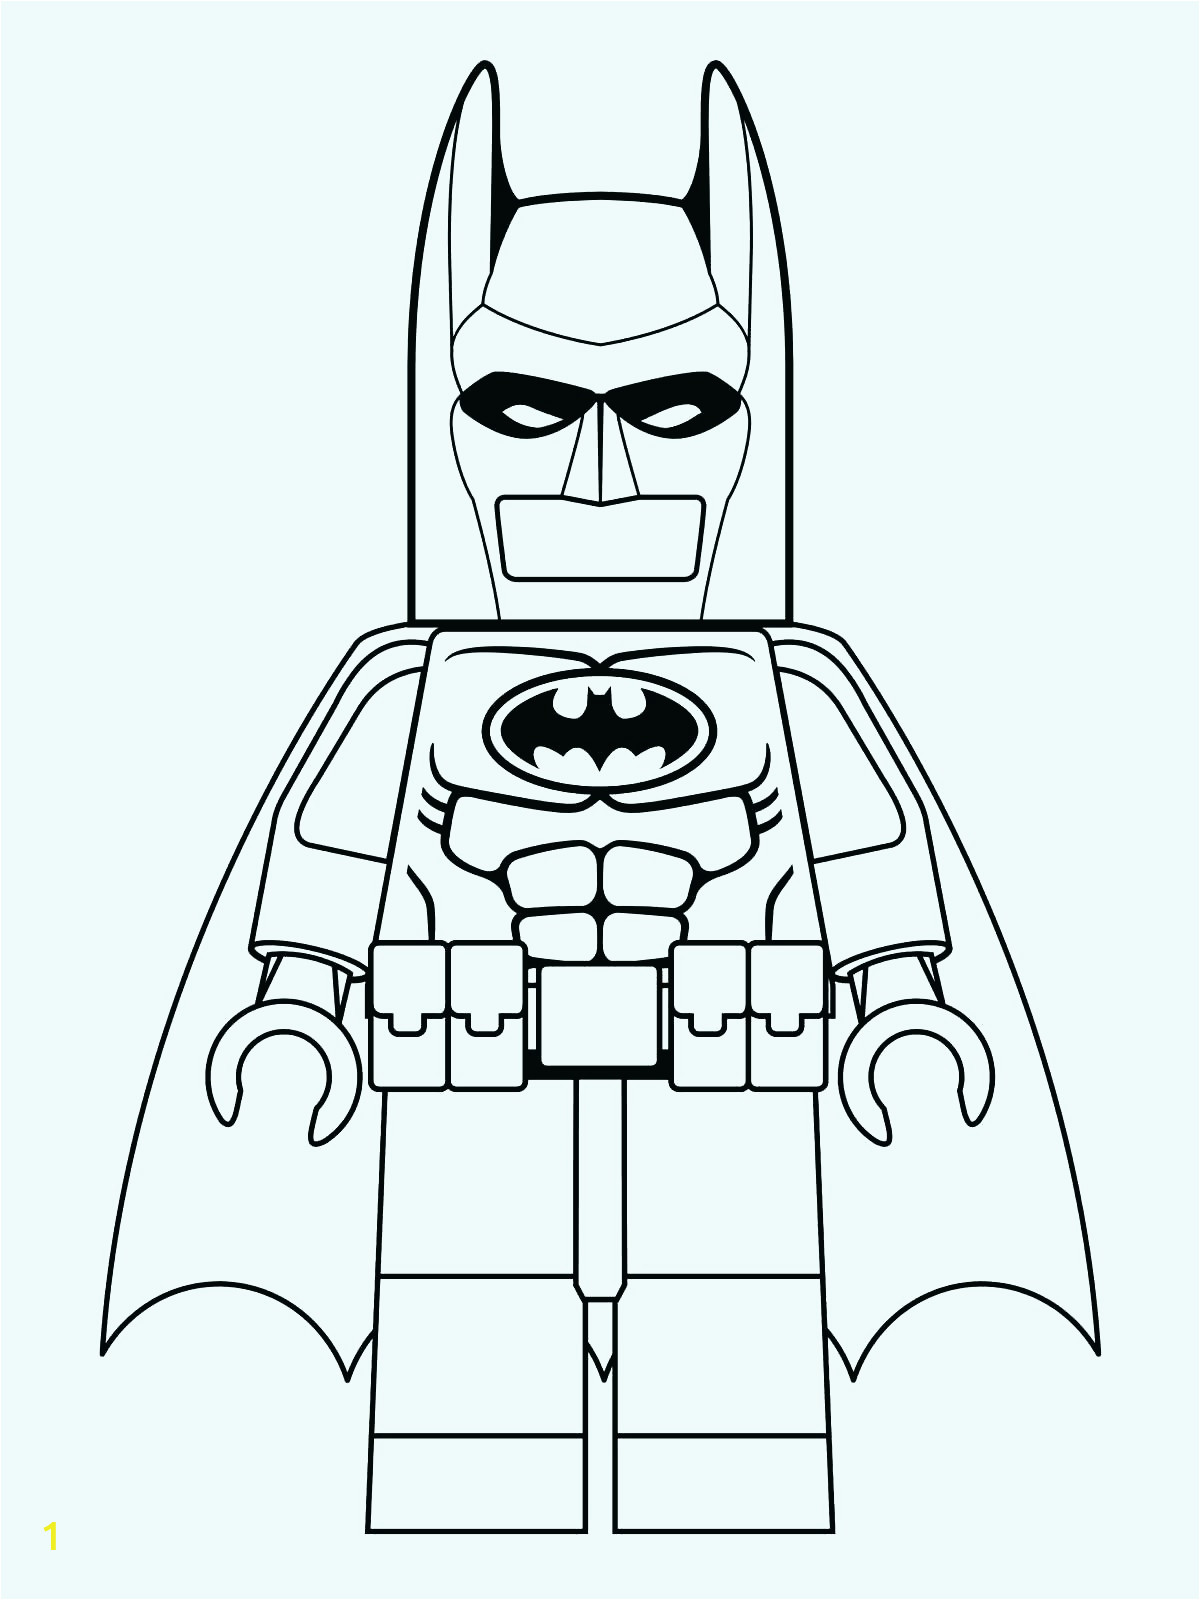 lego marvel ausmalbilder best lego marvel ausmalbilder lovely lego superhero coloring pages of lego marvel ausmalbilder